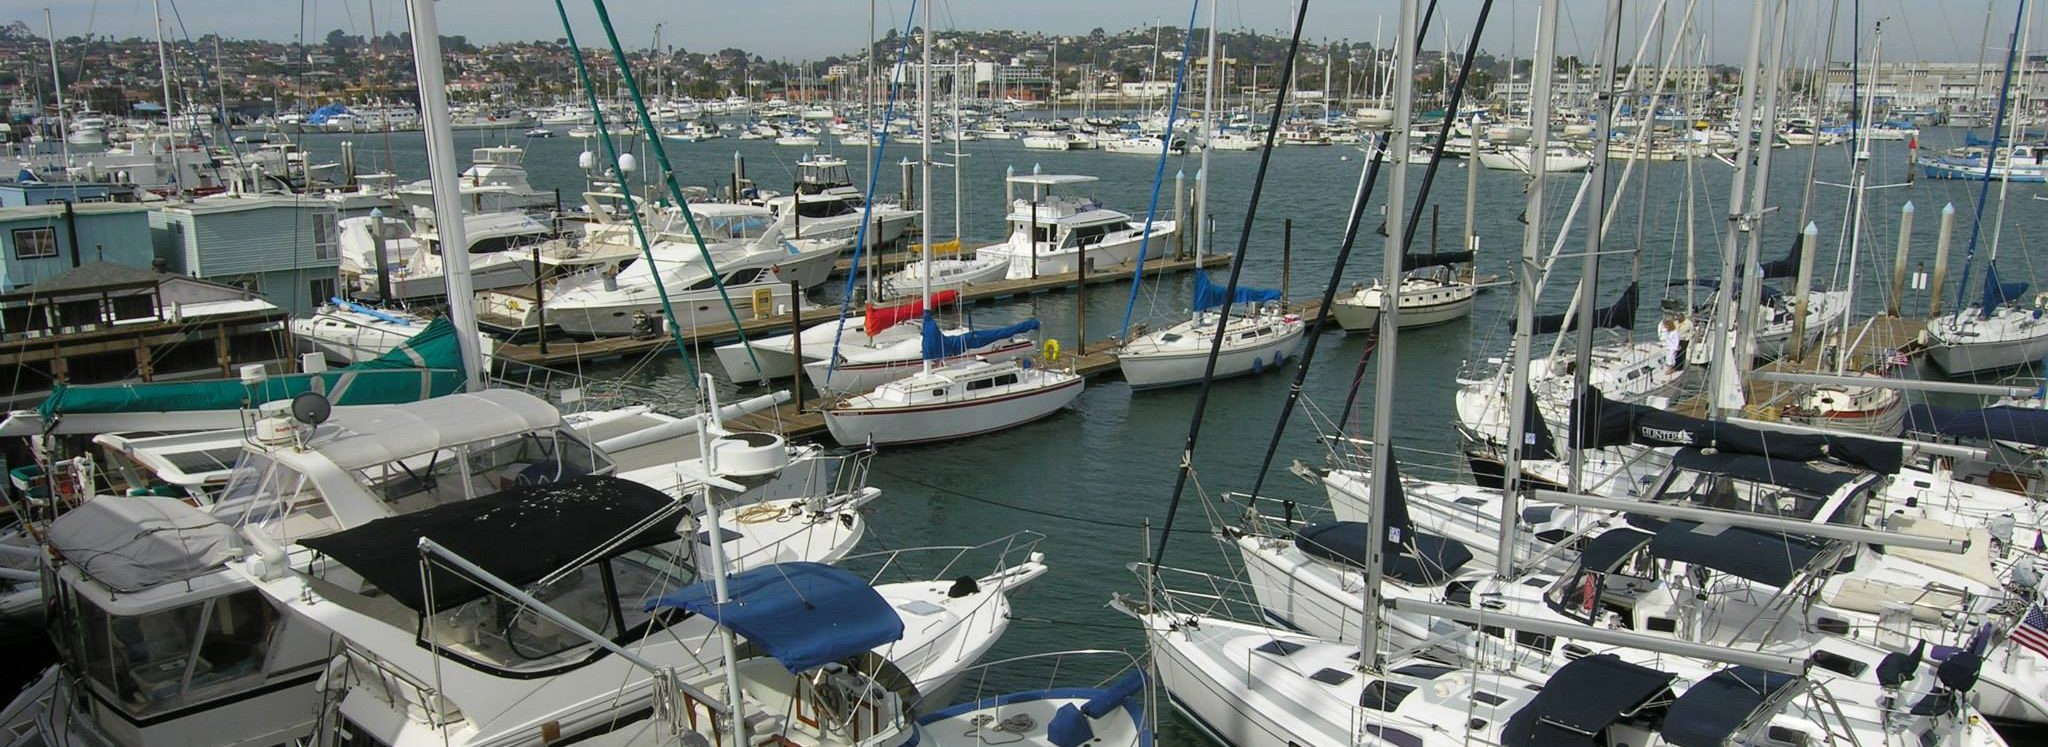 Boat Show2-Yachtfinders